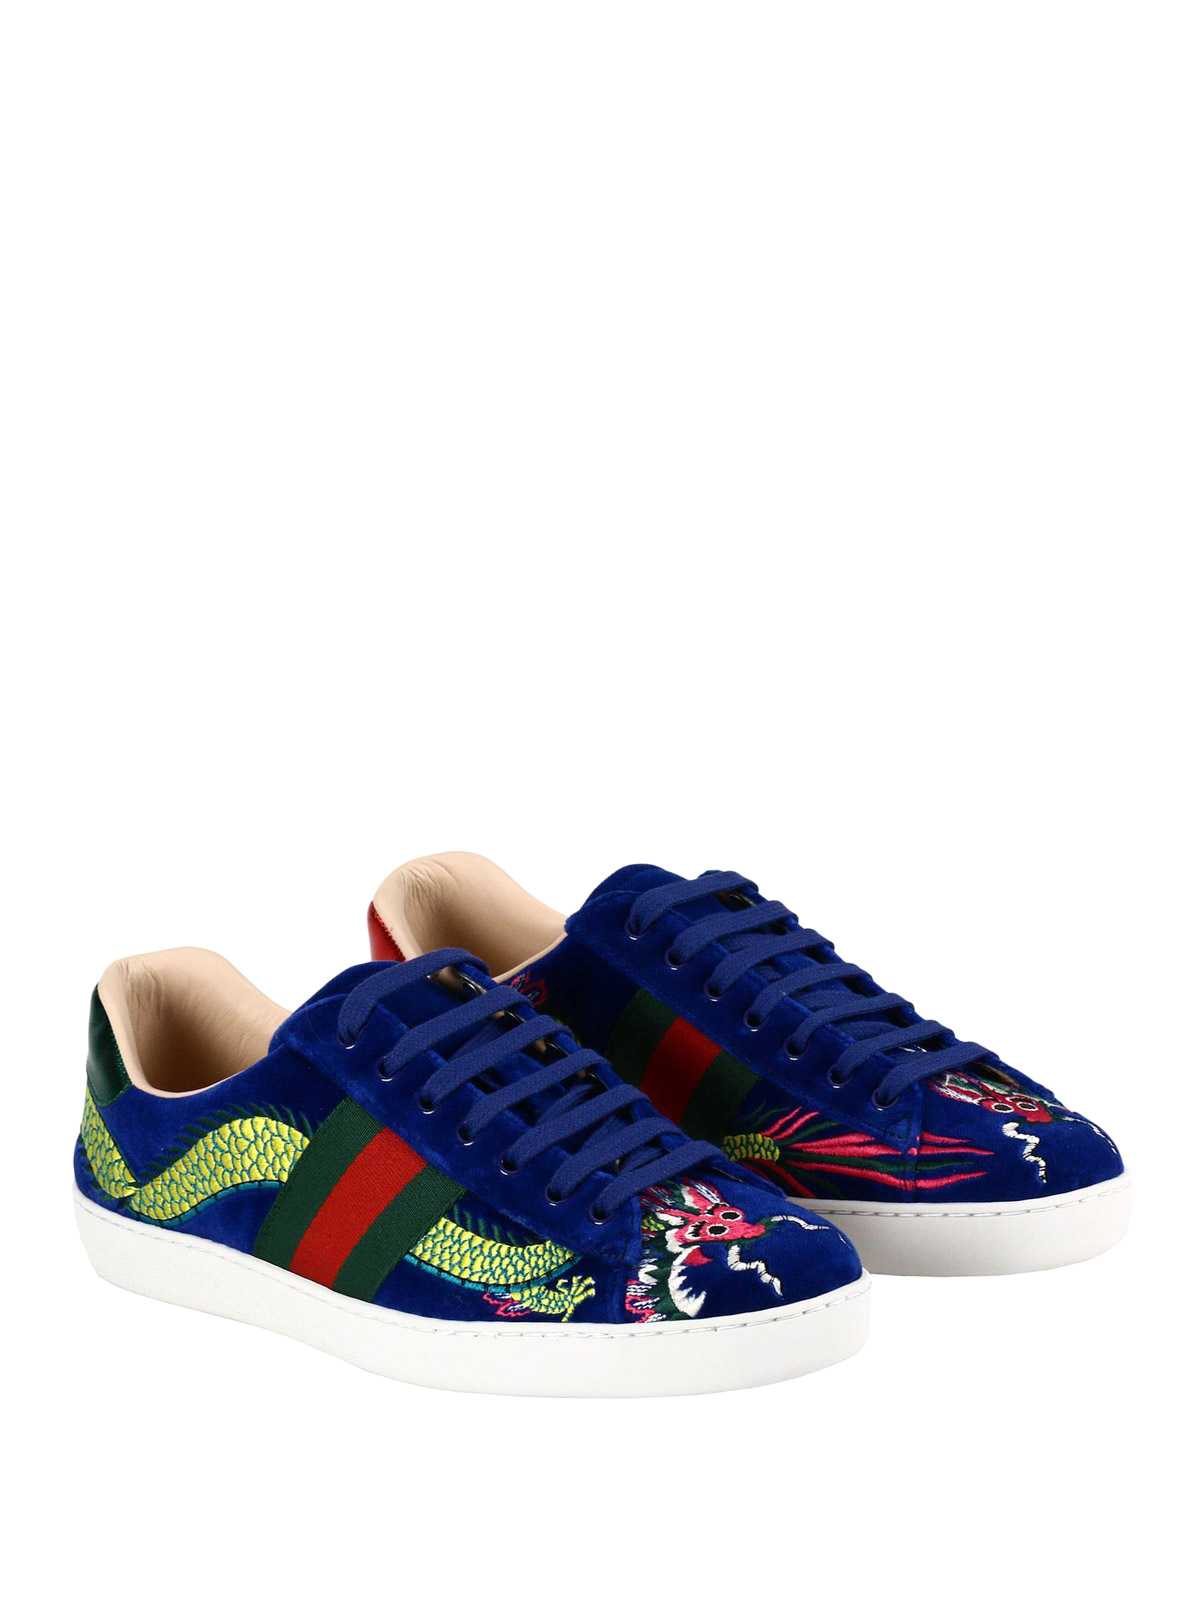 c4b25945dd54 Gucci - Ace embroidered velvet sneakers - trainers - 473756 FASJ0 4064